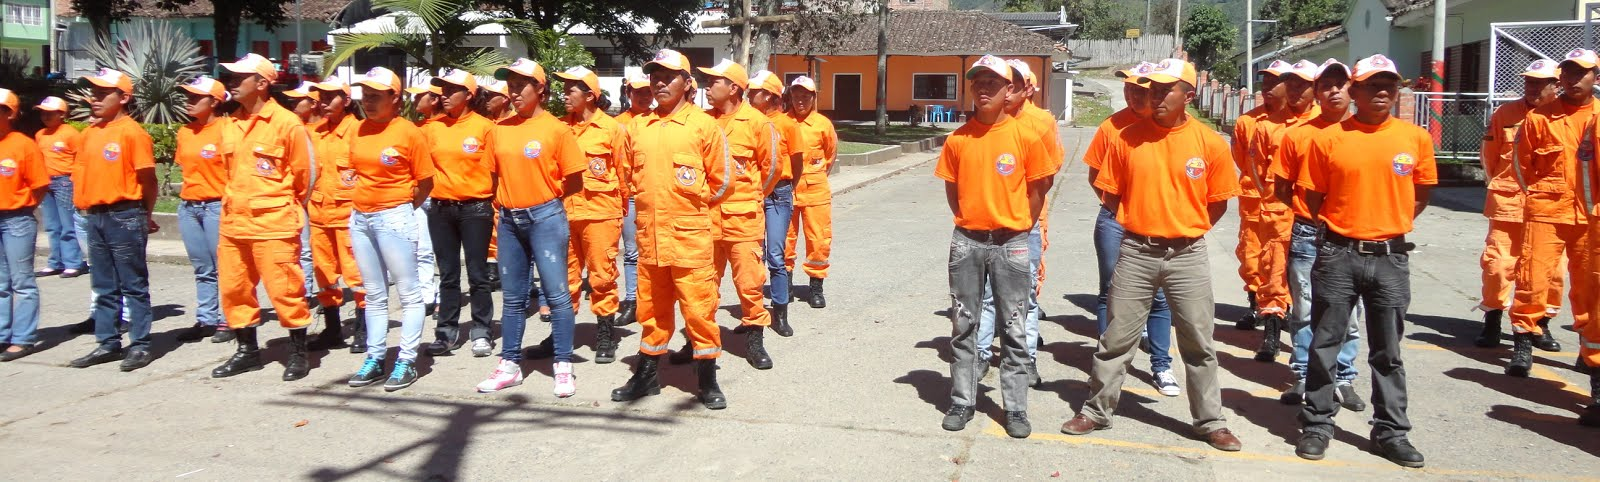 Junta Defensa Civil Inza Cauca